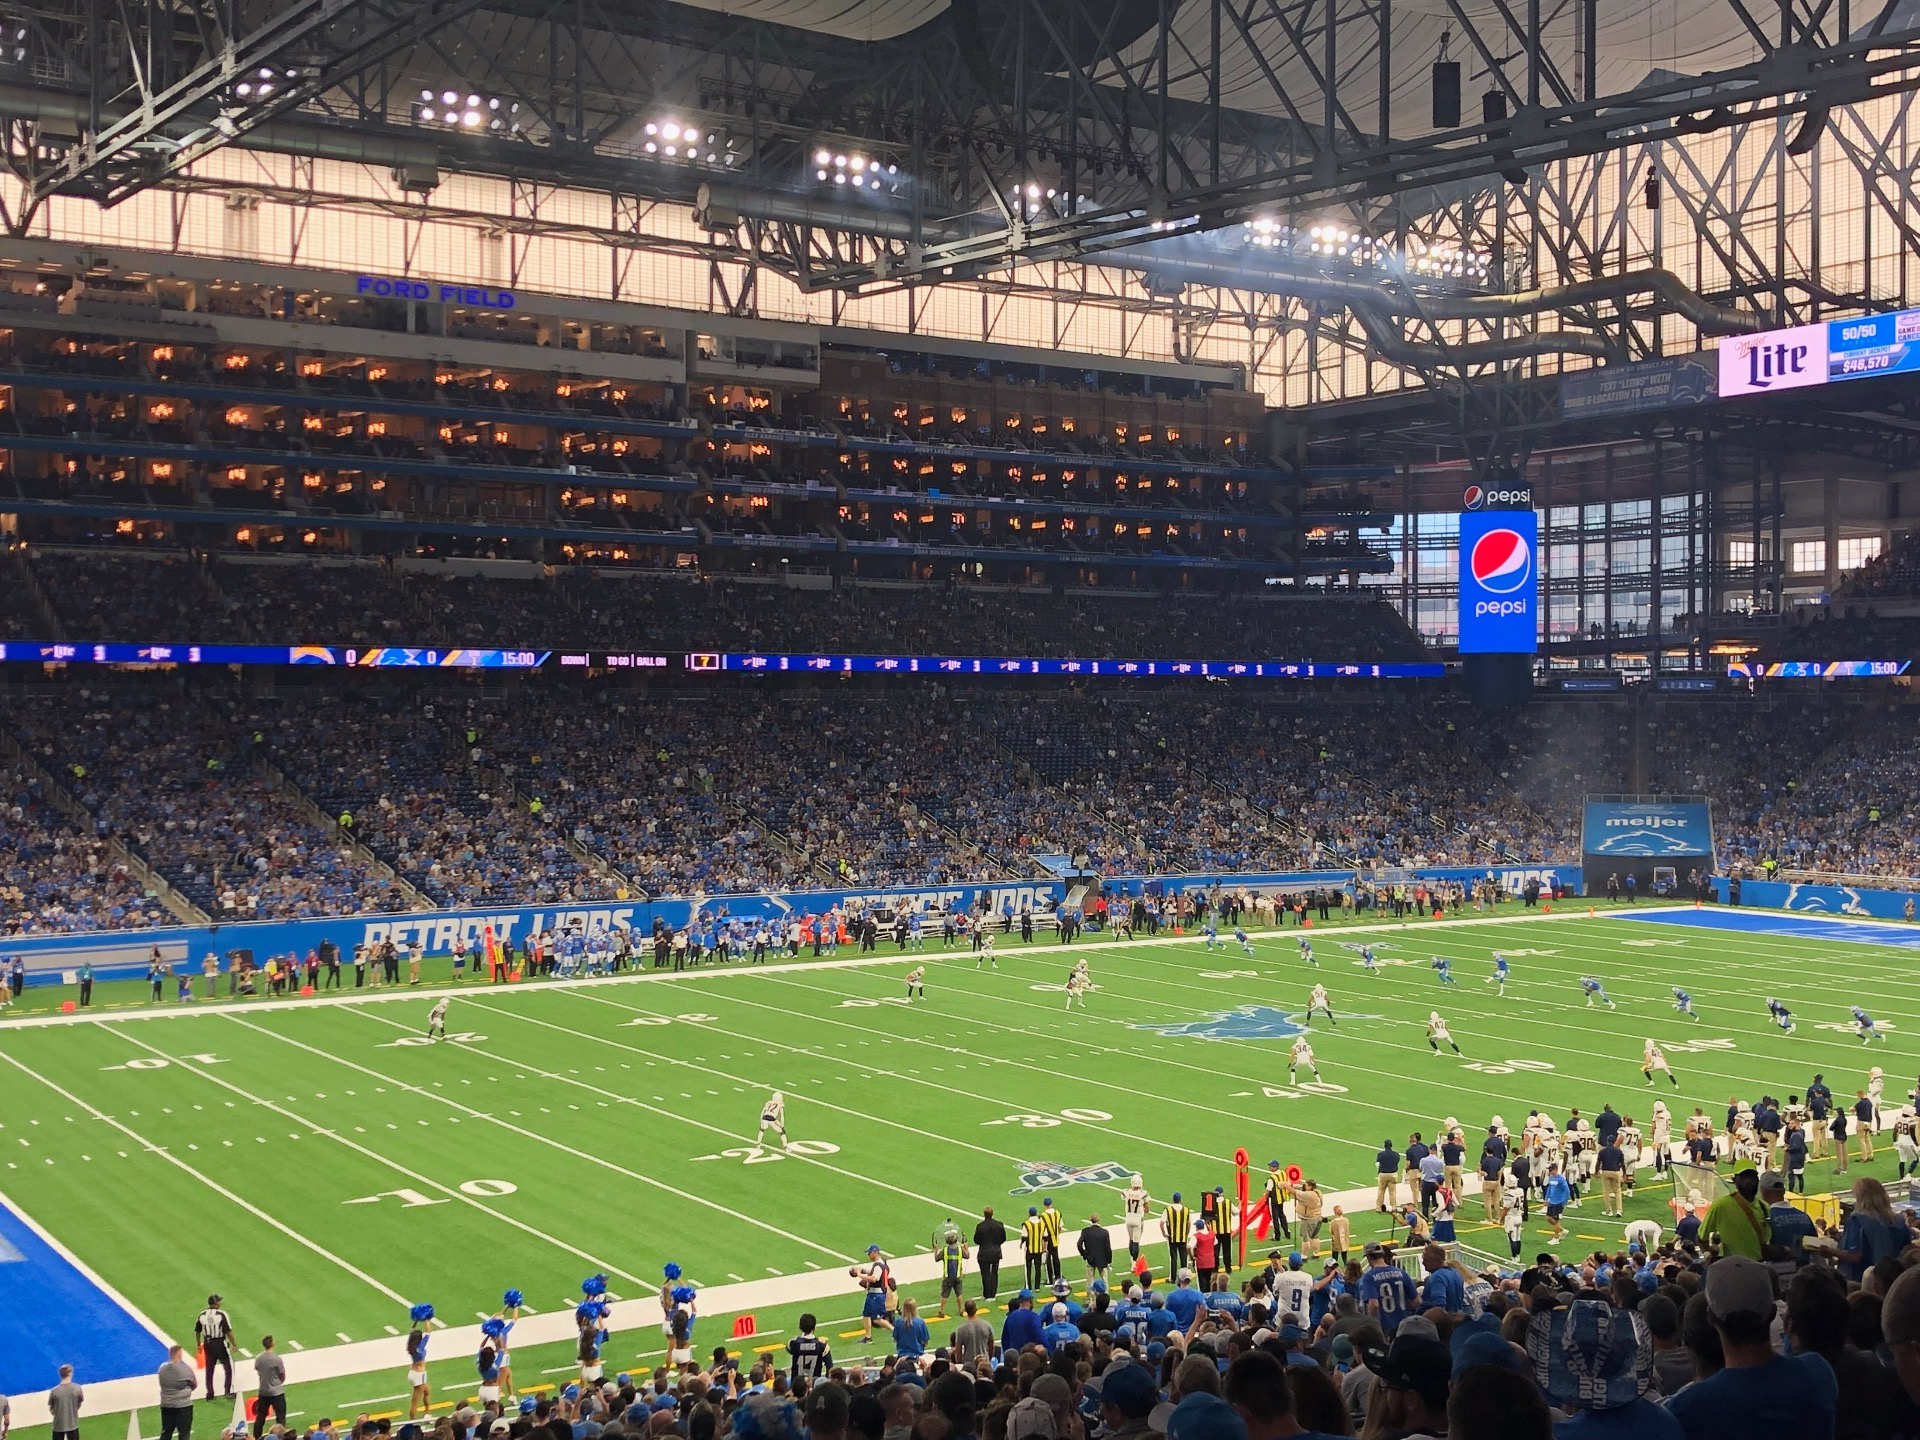 Ford Field Section 122 Row 38 Seat 22